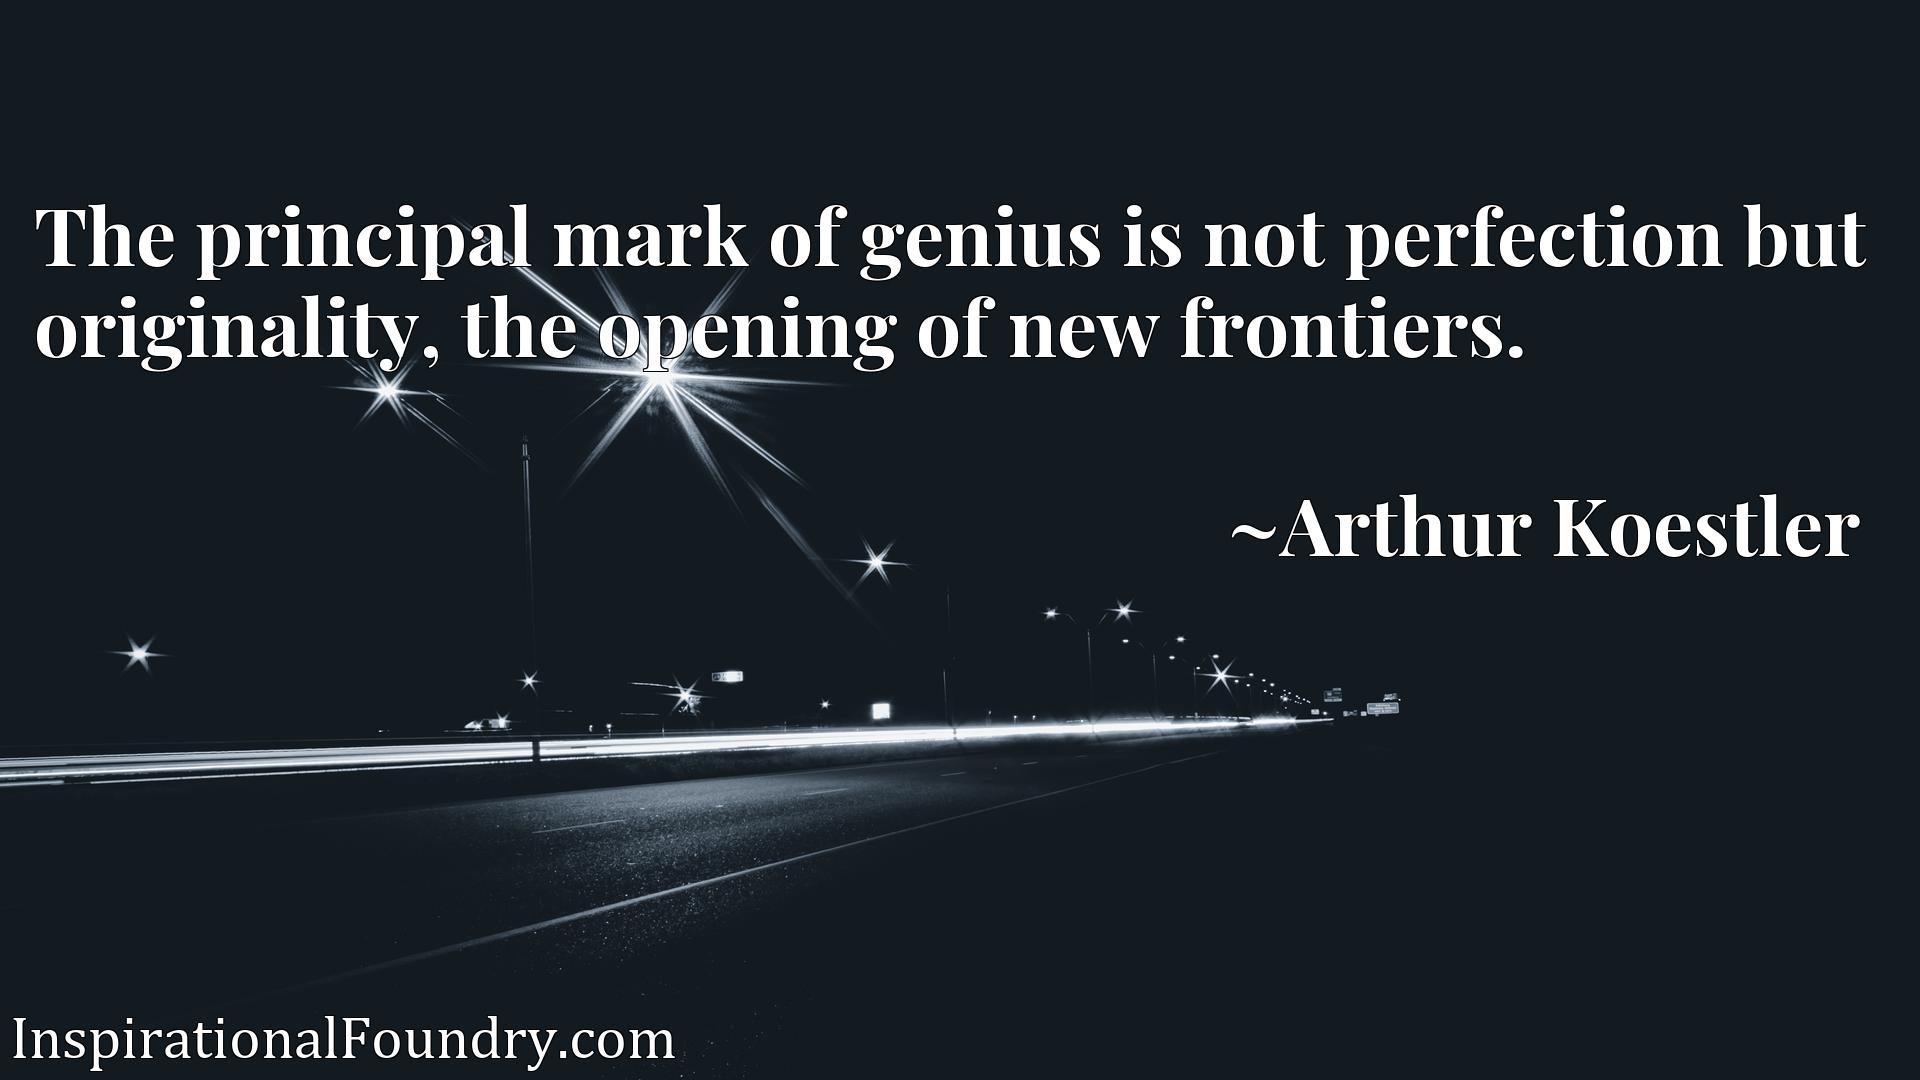 The principal mark of genius is not perfection but originality, the opening of new frontiers.